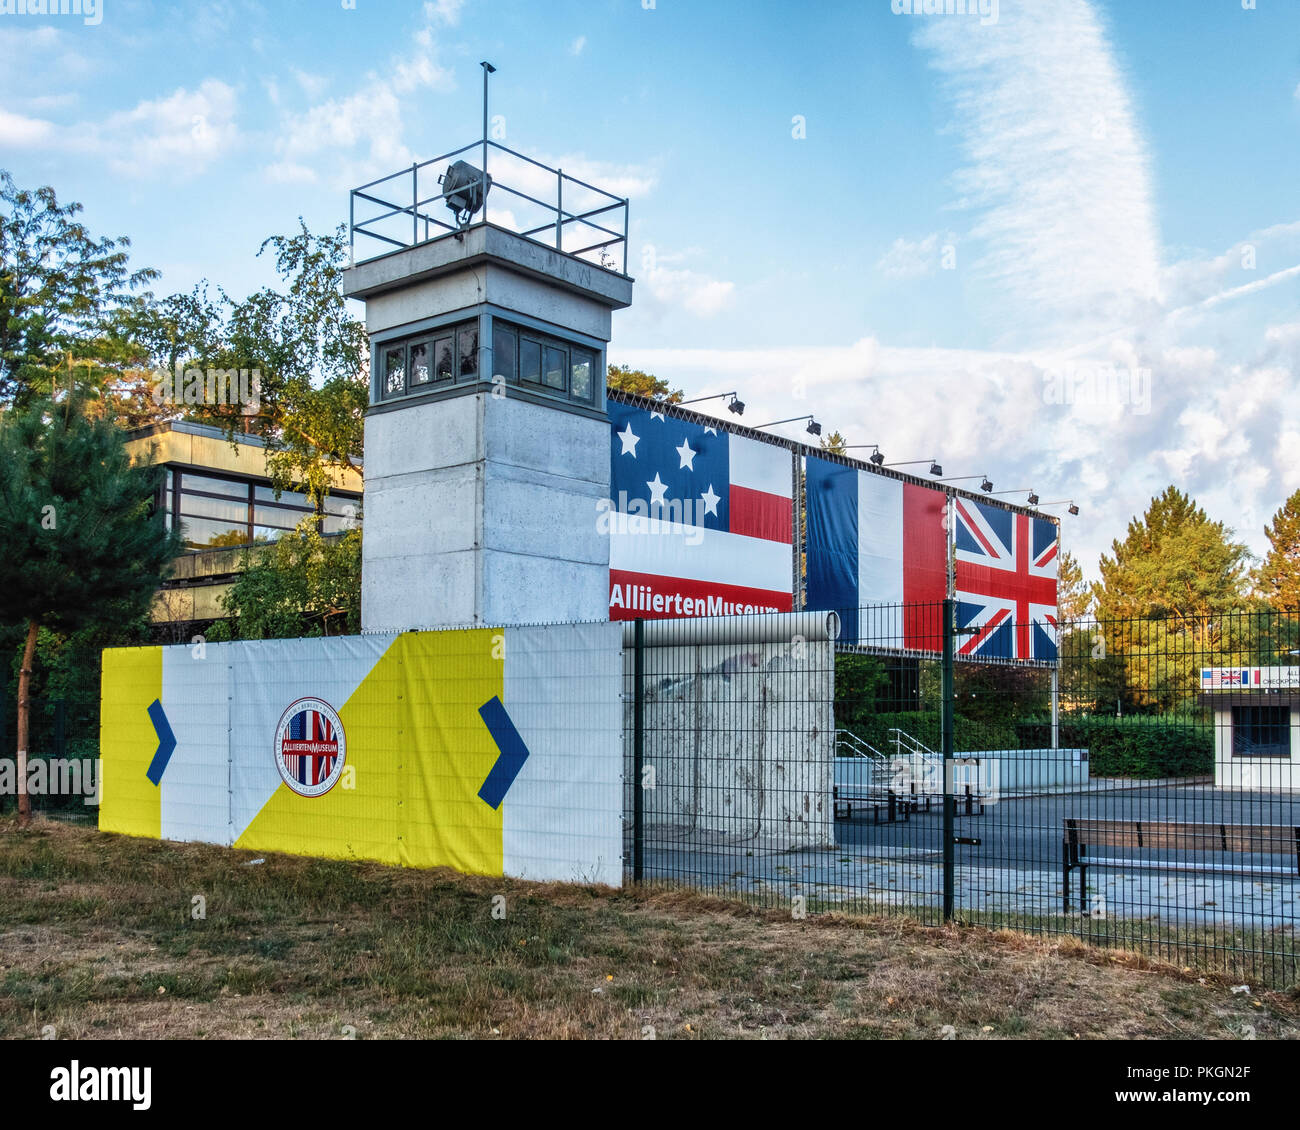 Berlin Dahlem, AlliiertenMuseum. Allied museum. The museum documents the political history and the military roles of the Western Allies - Stock Image